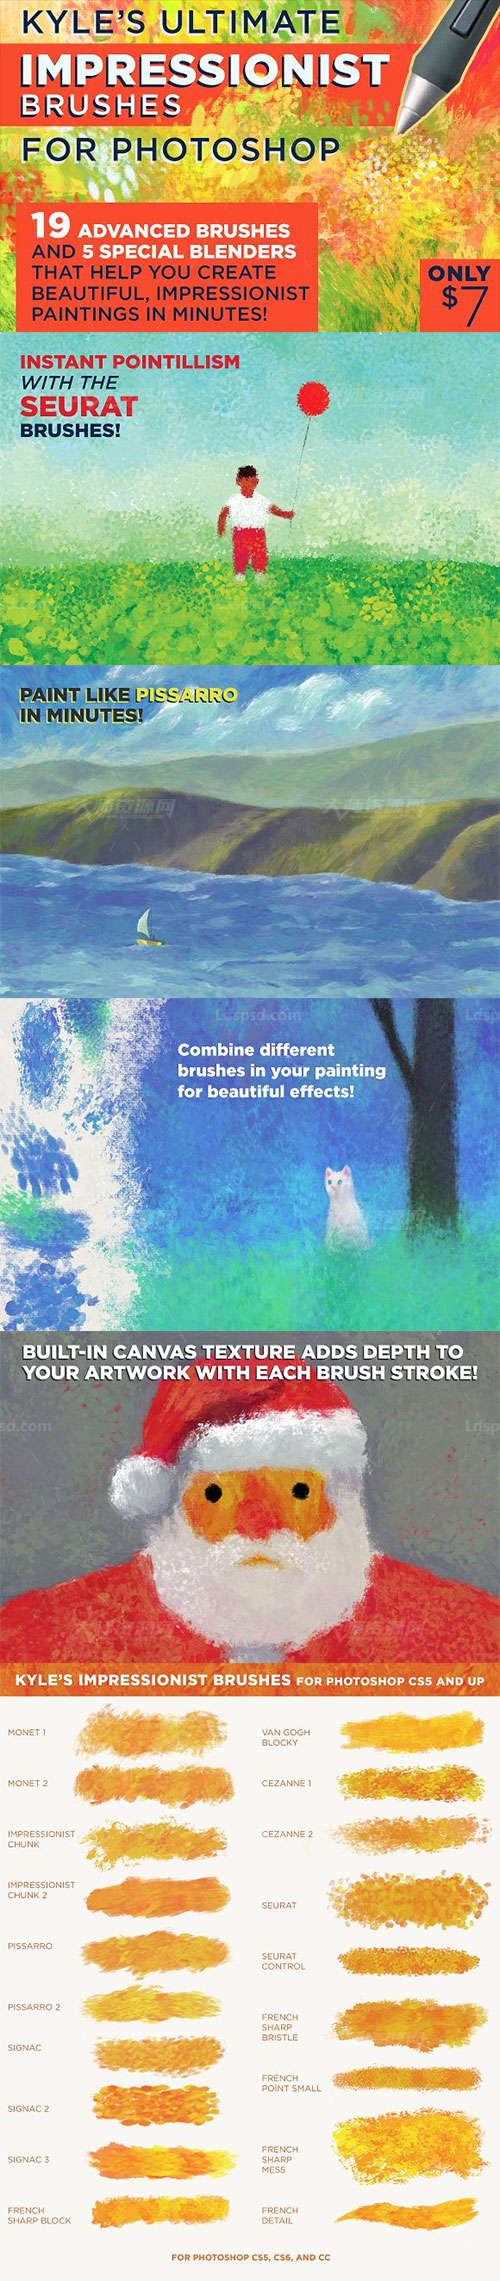 Kyle's IMPRESSIONIST Brushes for PS,极品PS工具预设-印象派笔刷